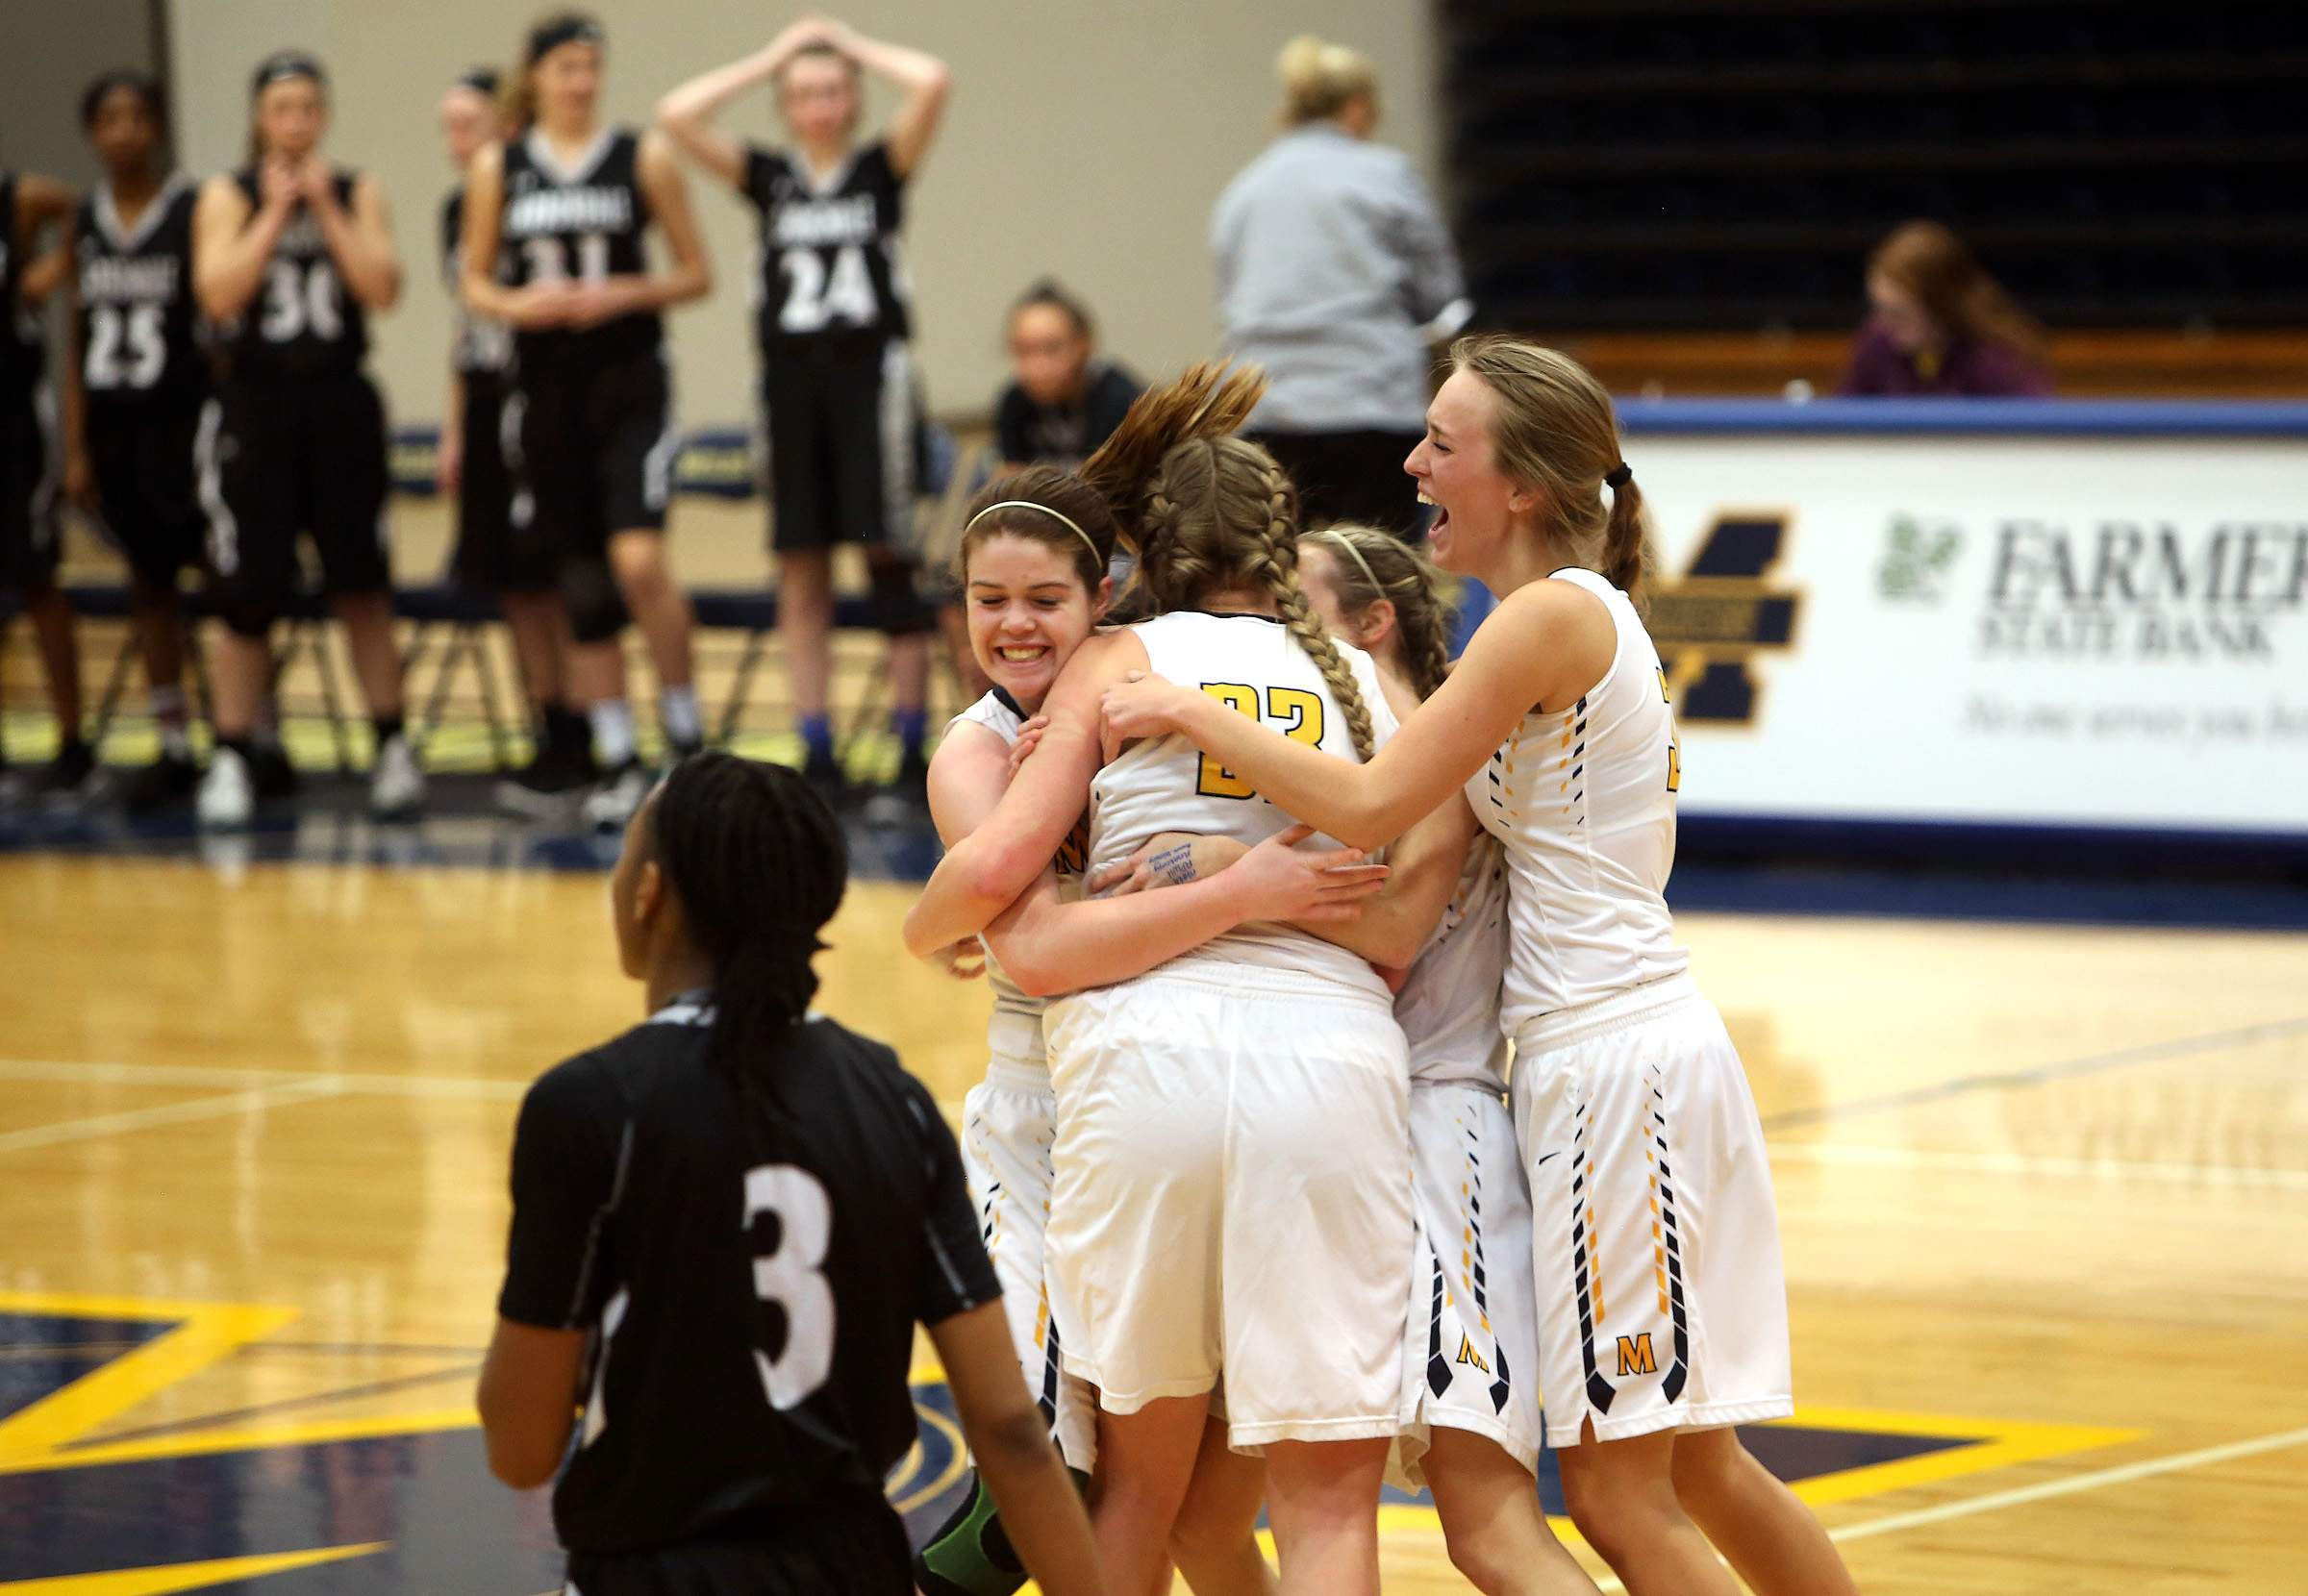 Marion seniors Abby Bayer (left) and Jasa Bell (right) hug juniors McKenzie Orange and Lauryn Kadela after the buzzer Thursday night.